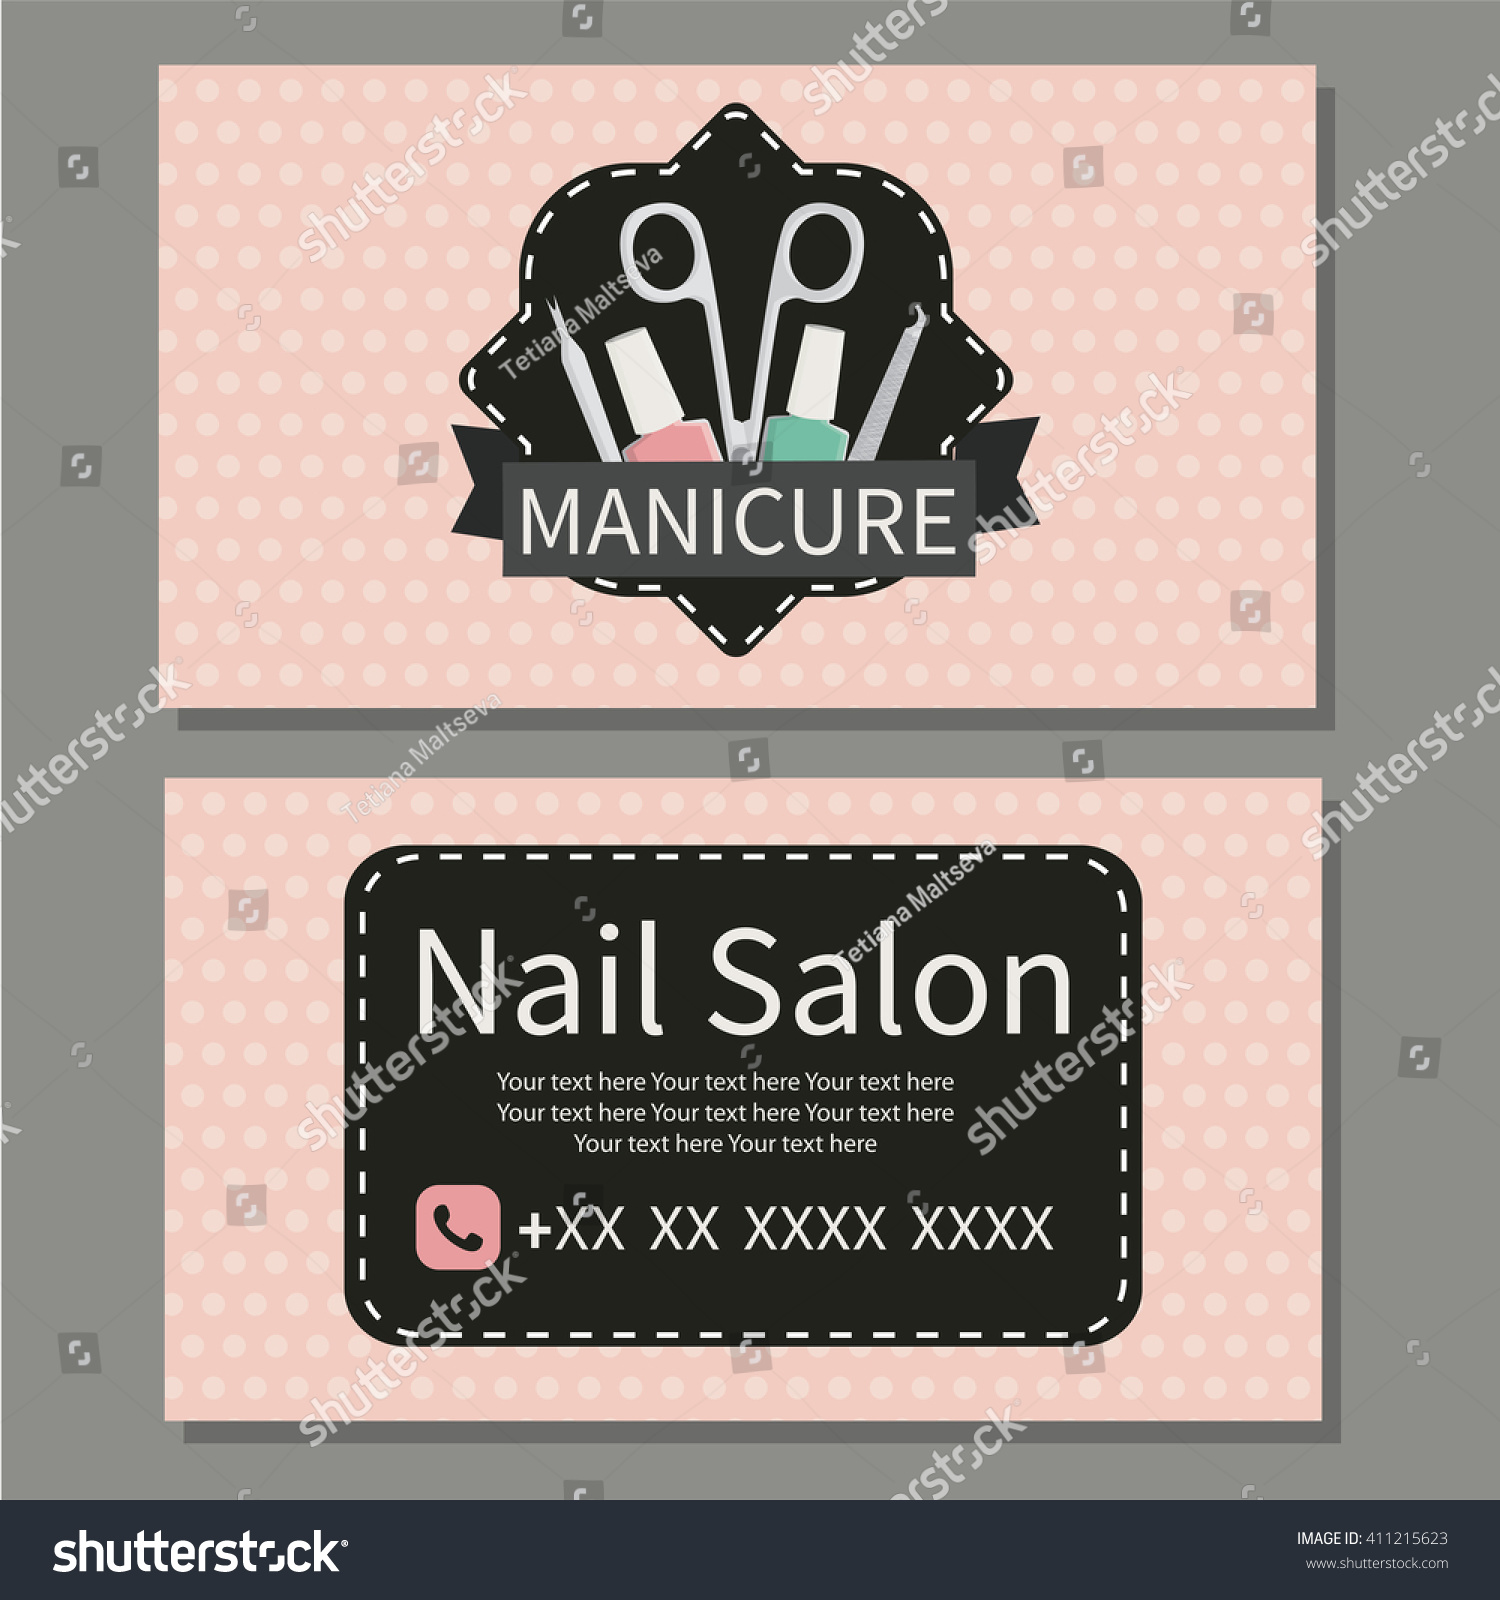 Beauty Manicure Nail Salon Cute Business Stock Vector